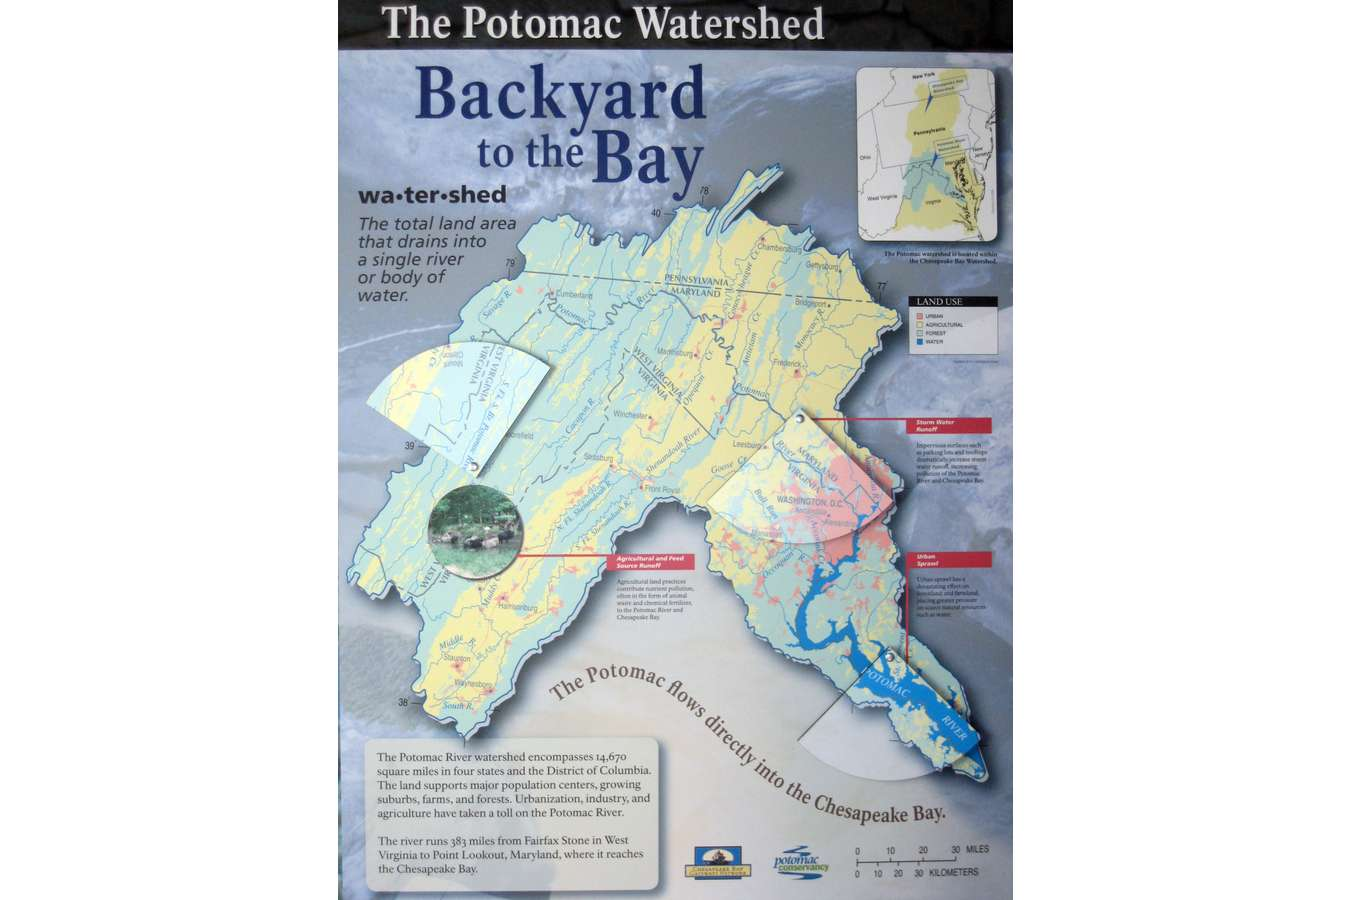 1Bckyrd2bay : Backyard to the Bay Maps the Potomac River Watershed with Wedge-shape Reveal Windows